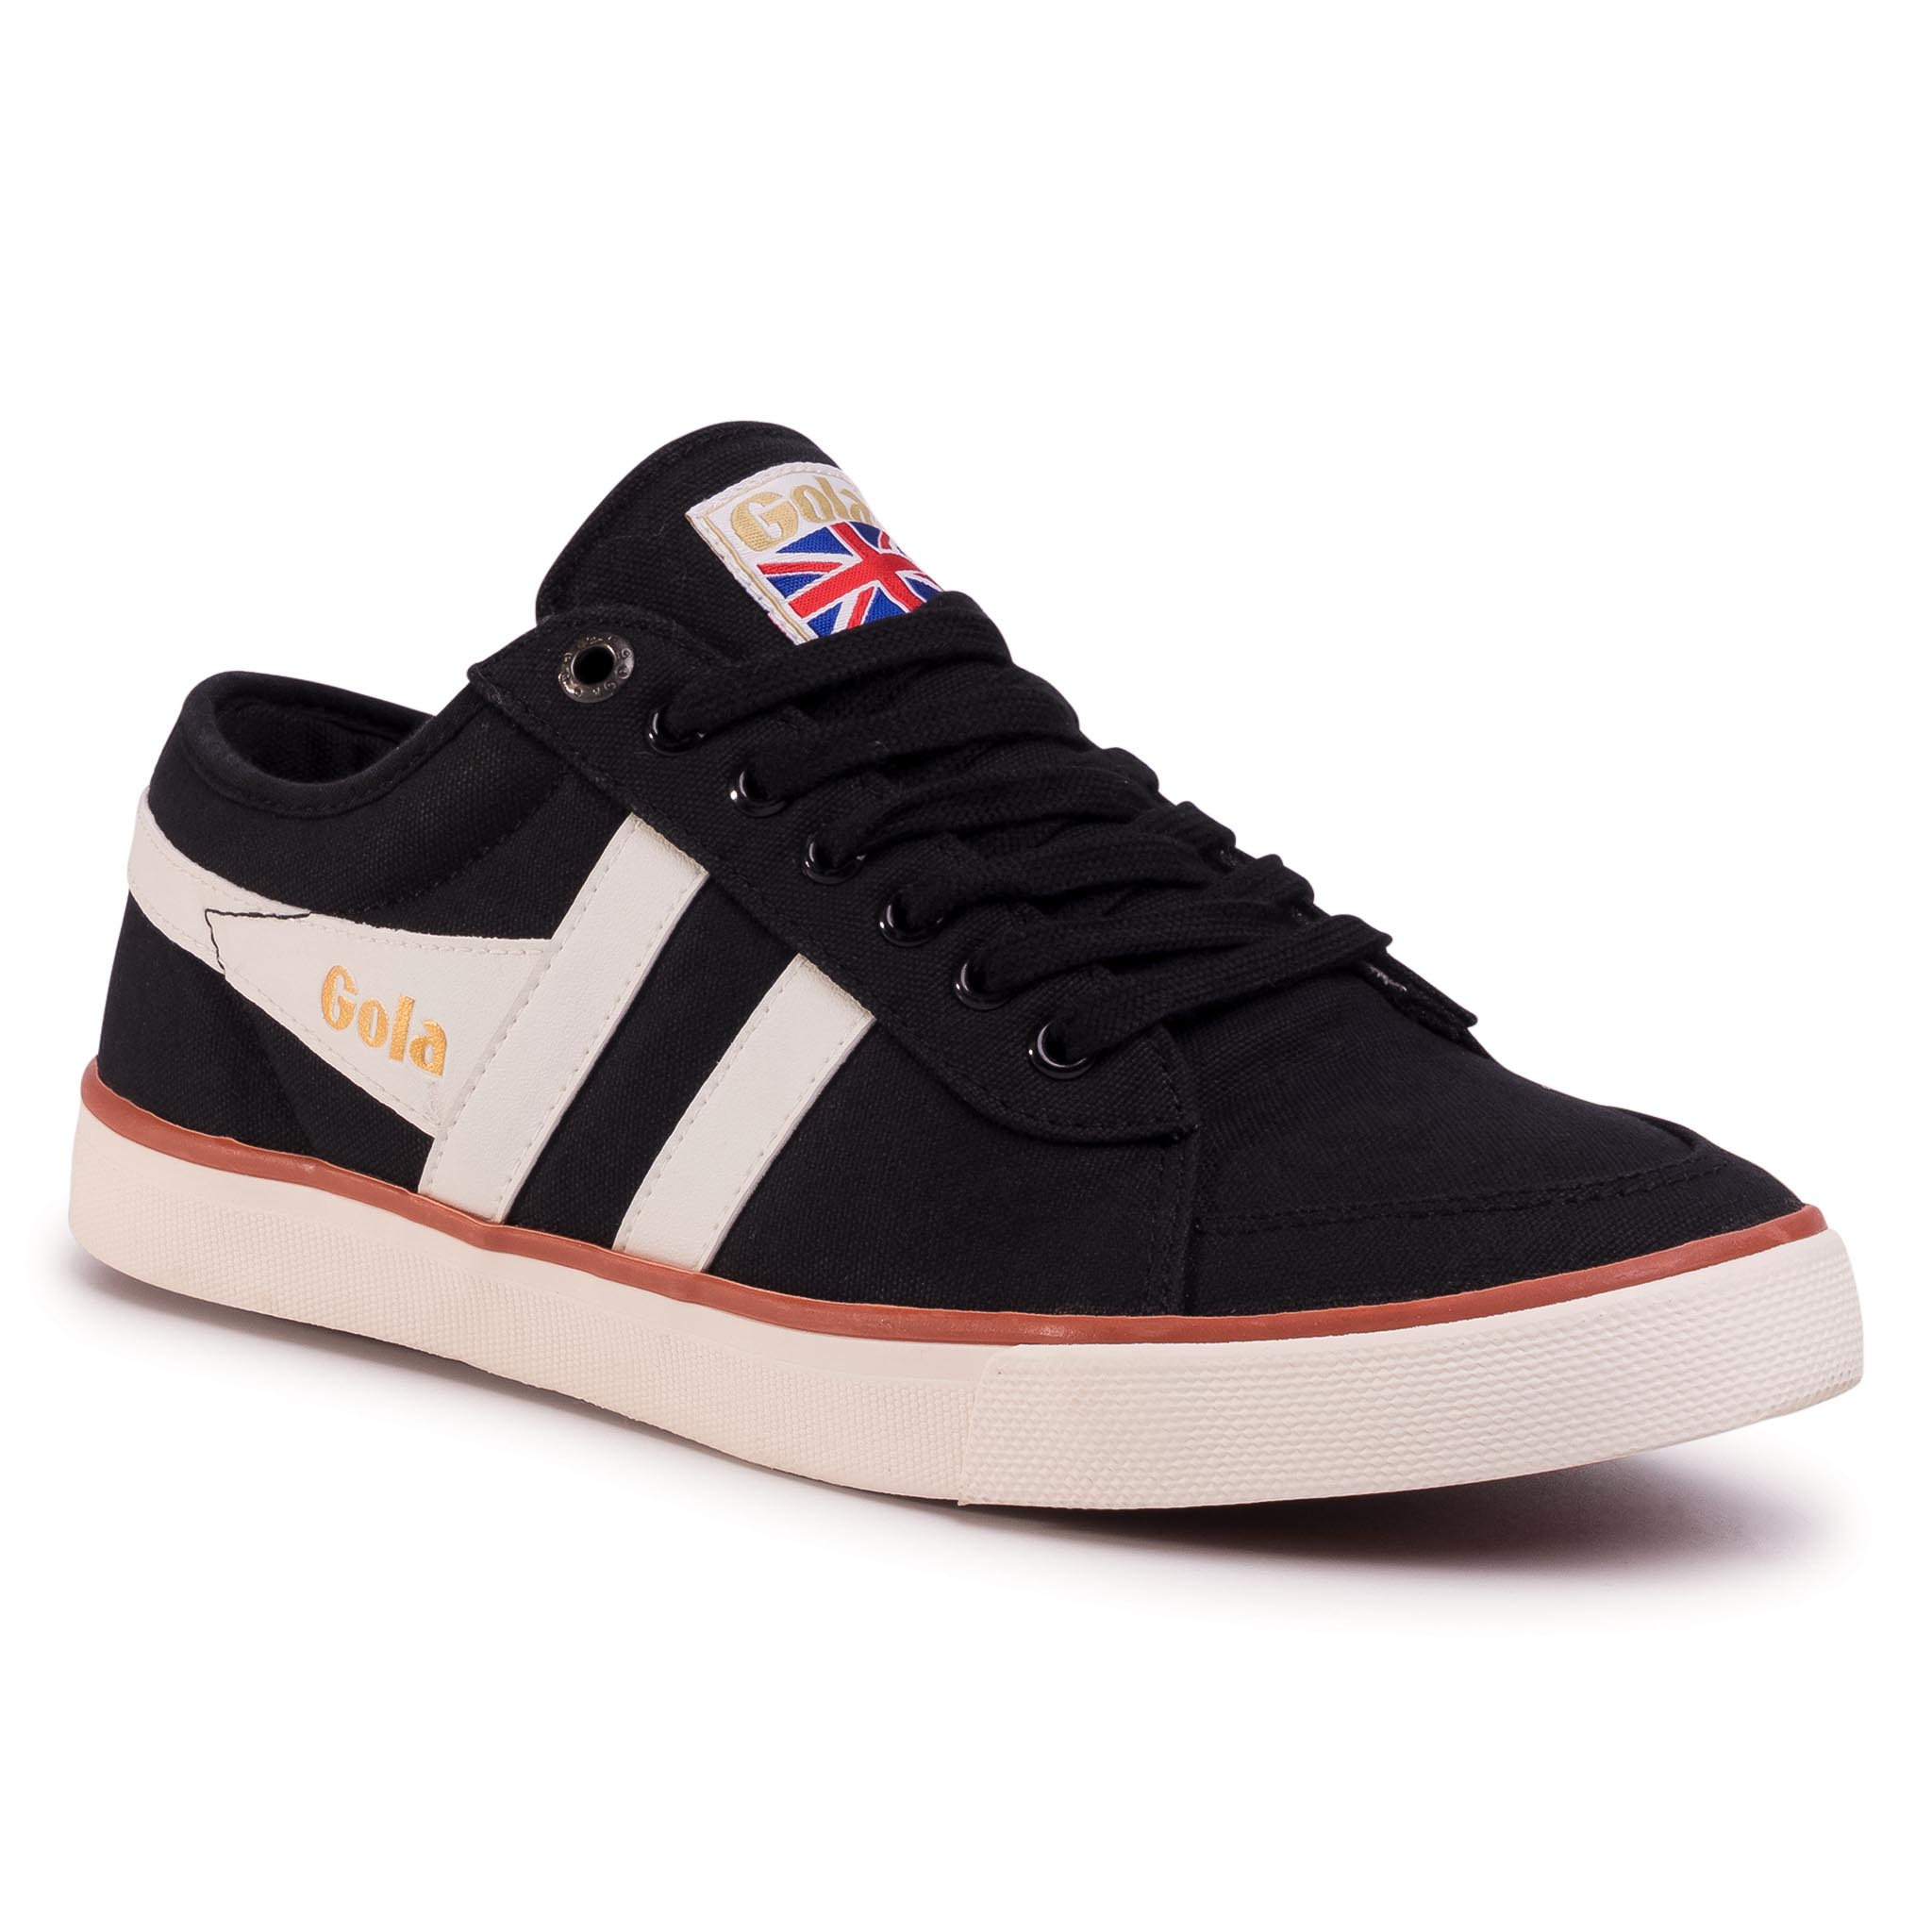 Teniși Gola - Comet Cma516 Black/Off Wht/Moody Orange imagine epantofi.ro 2021